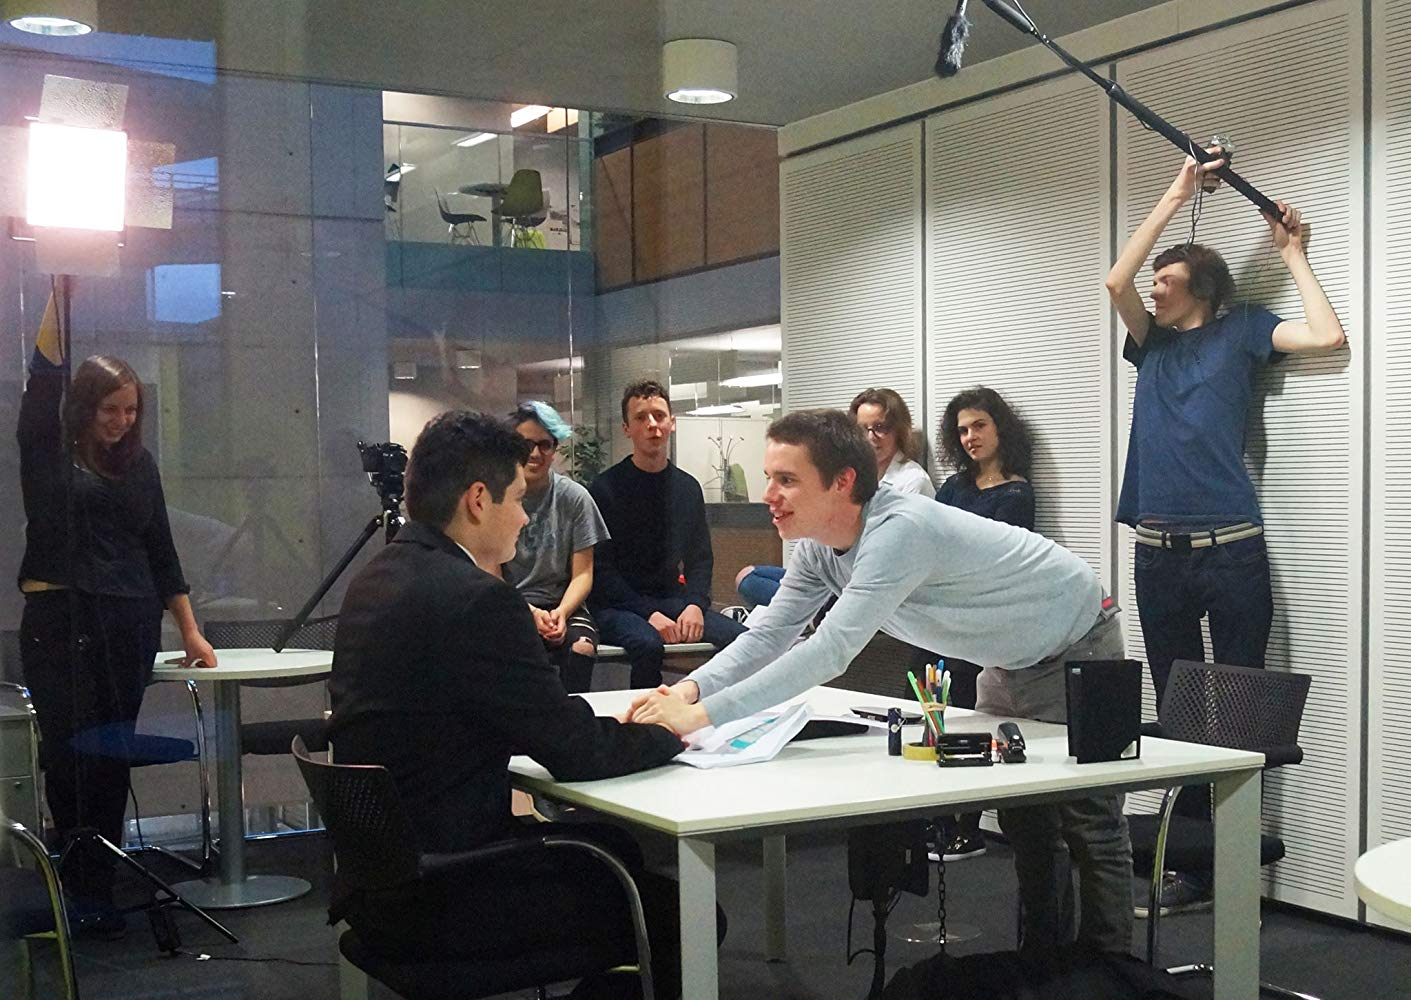 Behind the scenes image from LUFP student short film A Pointless Fraud